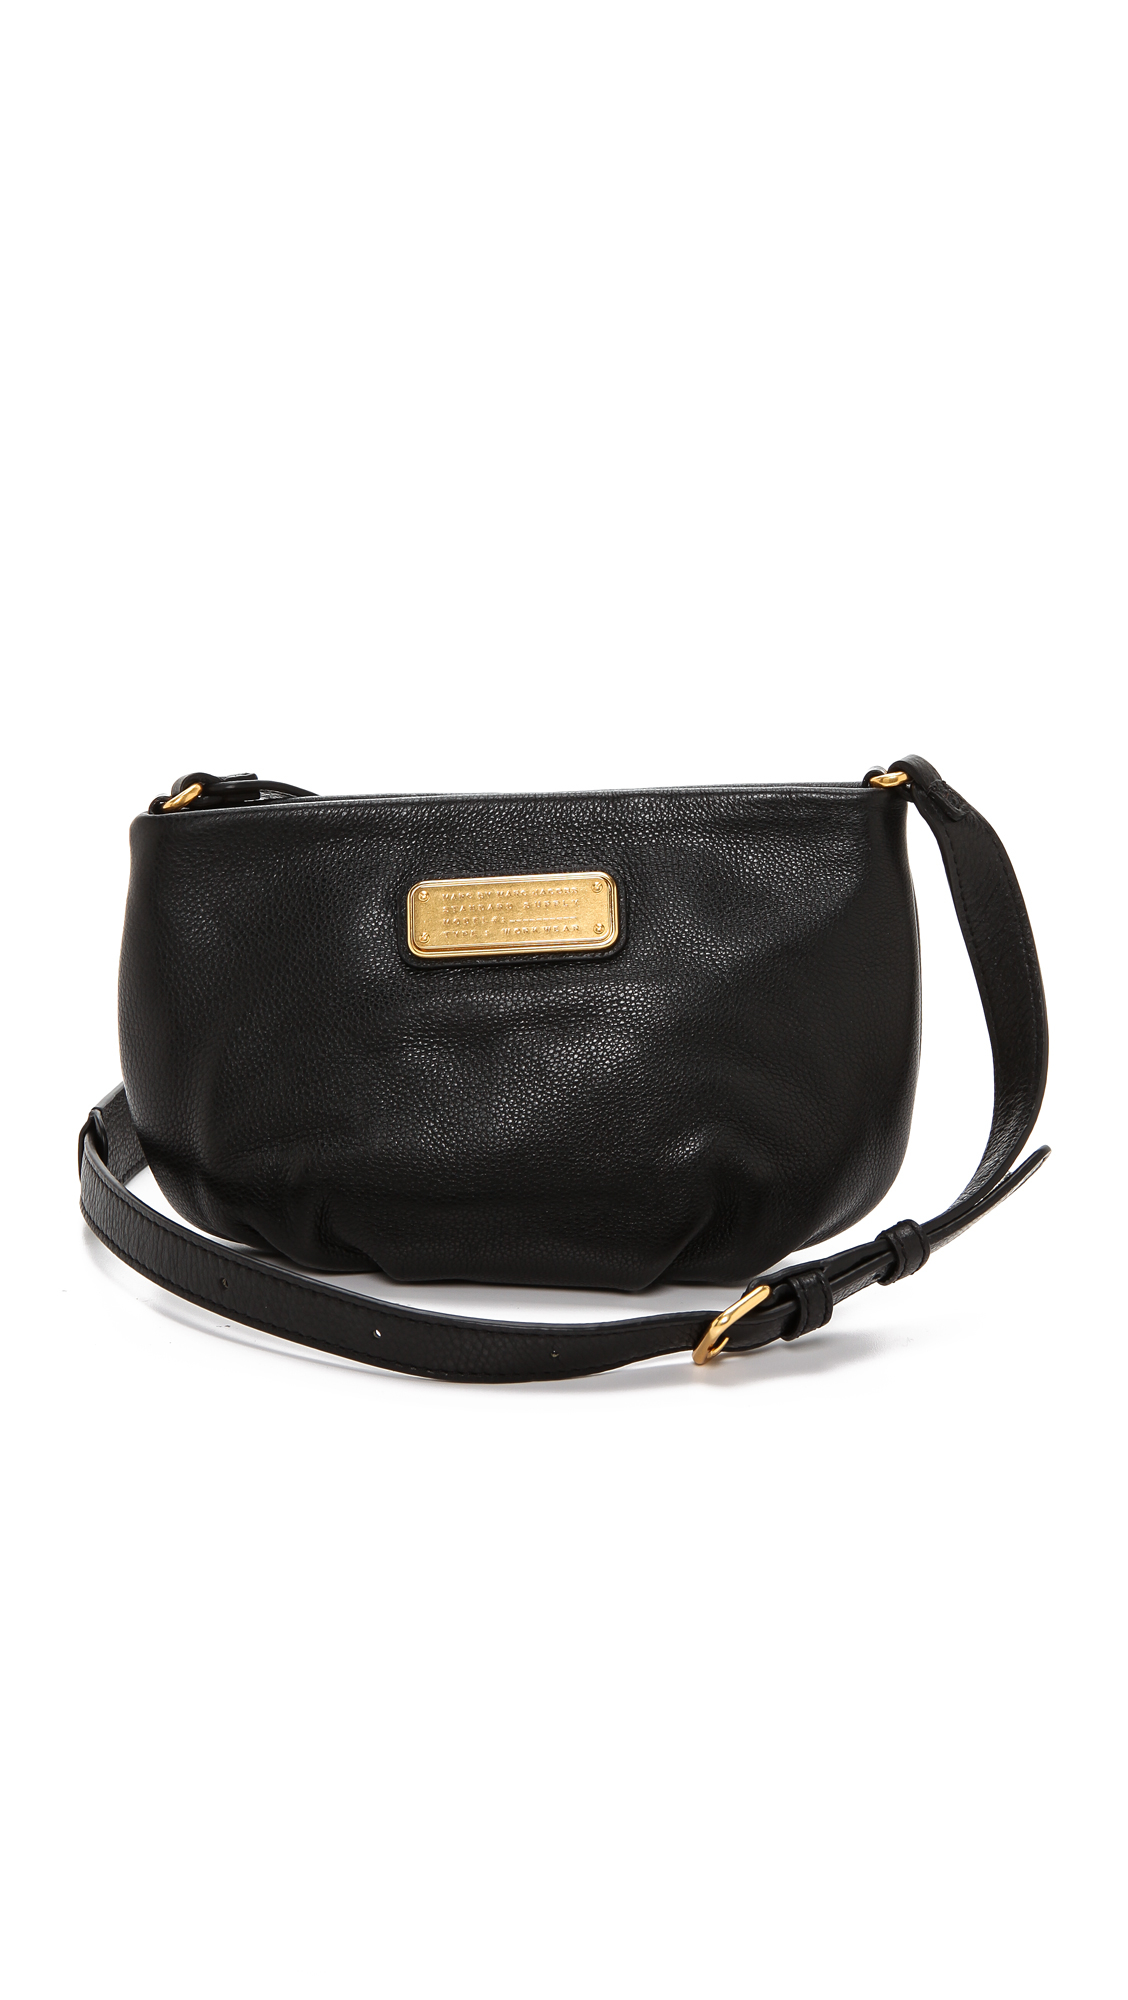 0e6b9357682d Lyst - Marc By Marc Jacobs New Q Percy Bag in Black